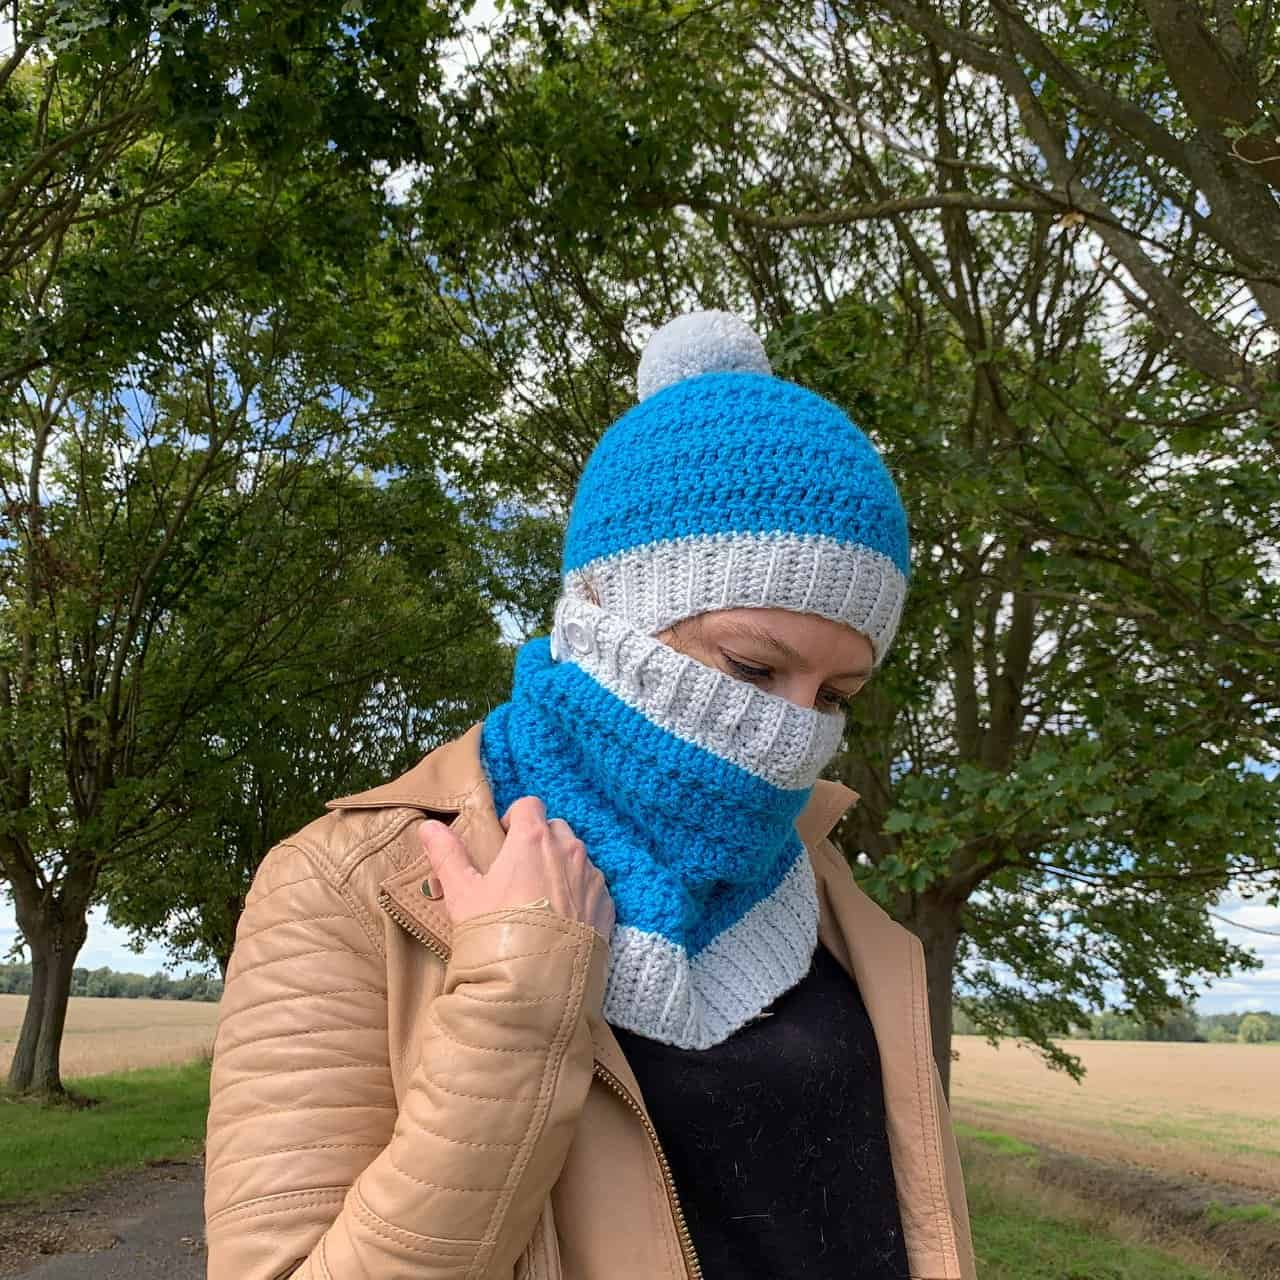 A woman stands in front of an avenue of trees in a turquoise hat and cowl that covers her face